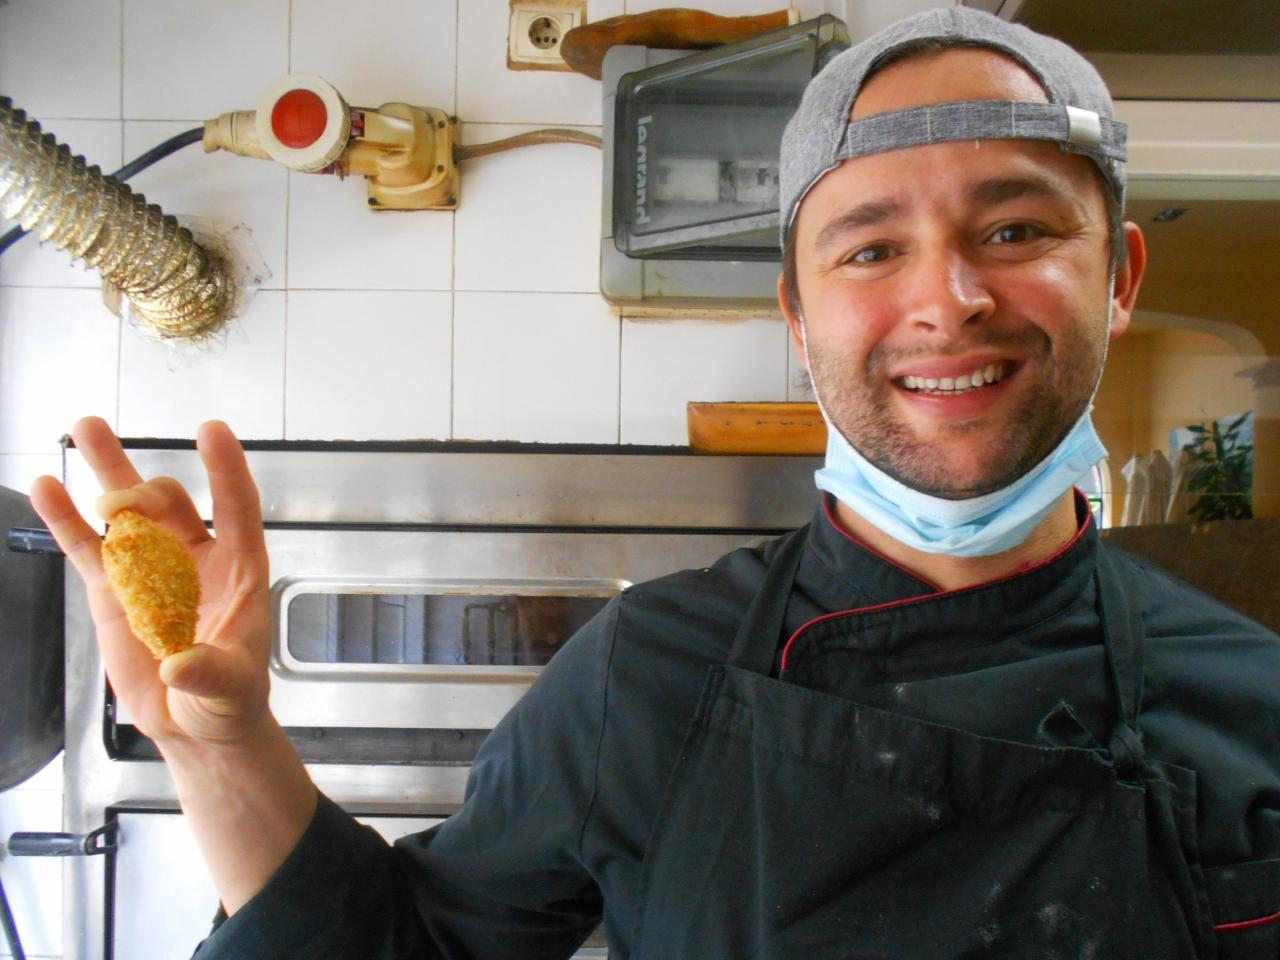 Michael shows one of his aubergine croquettes